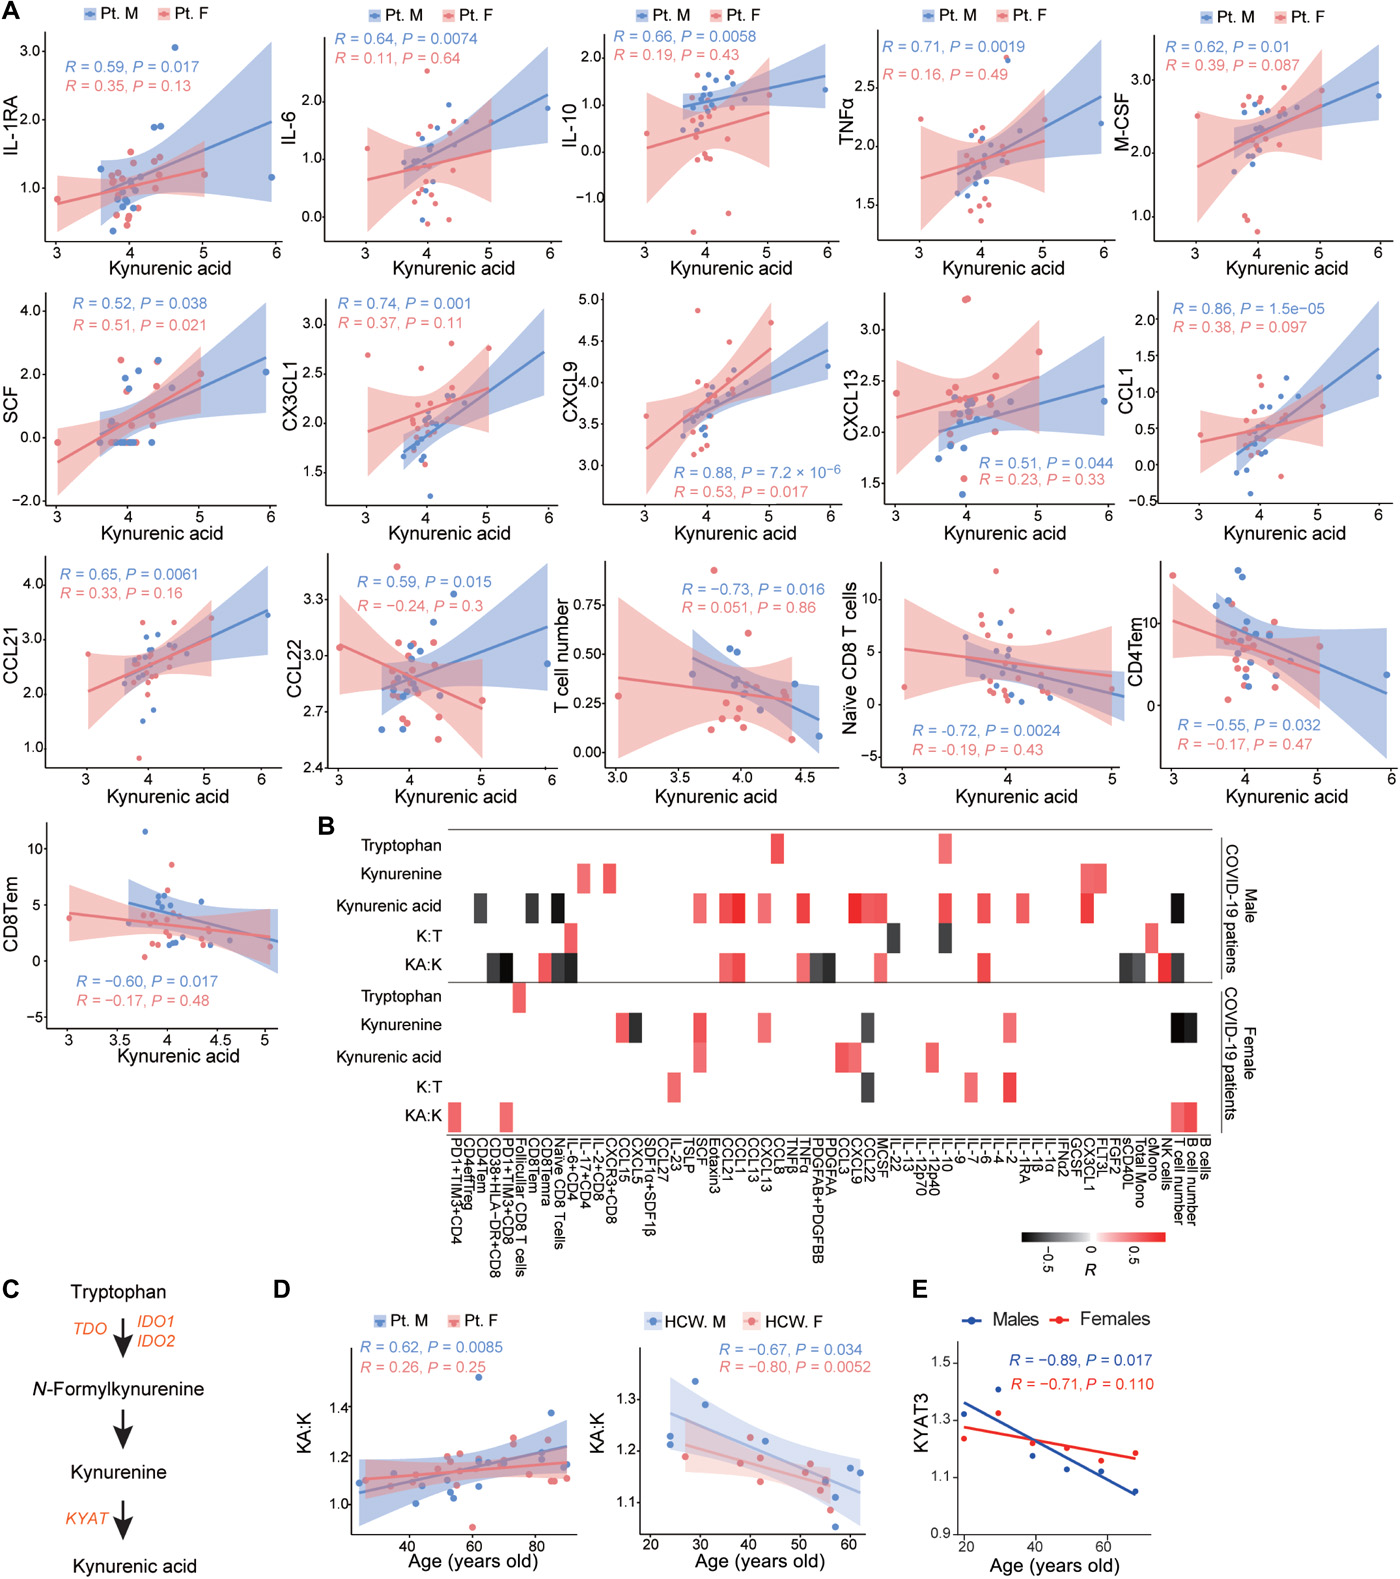 Kynurenic acid may underlie sex-specific immune responses to COVID-19 - Science